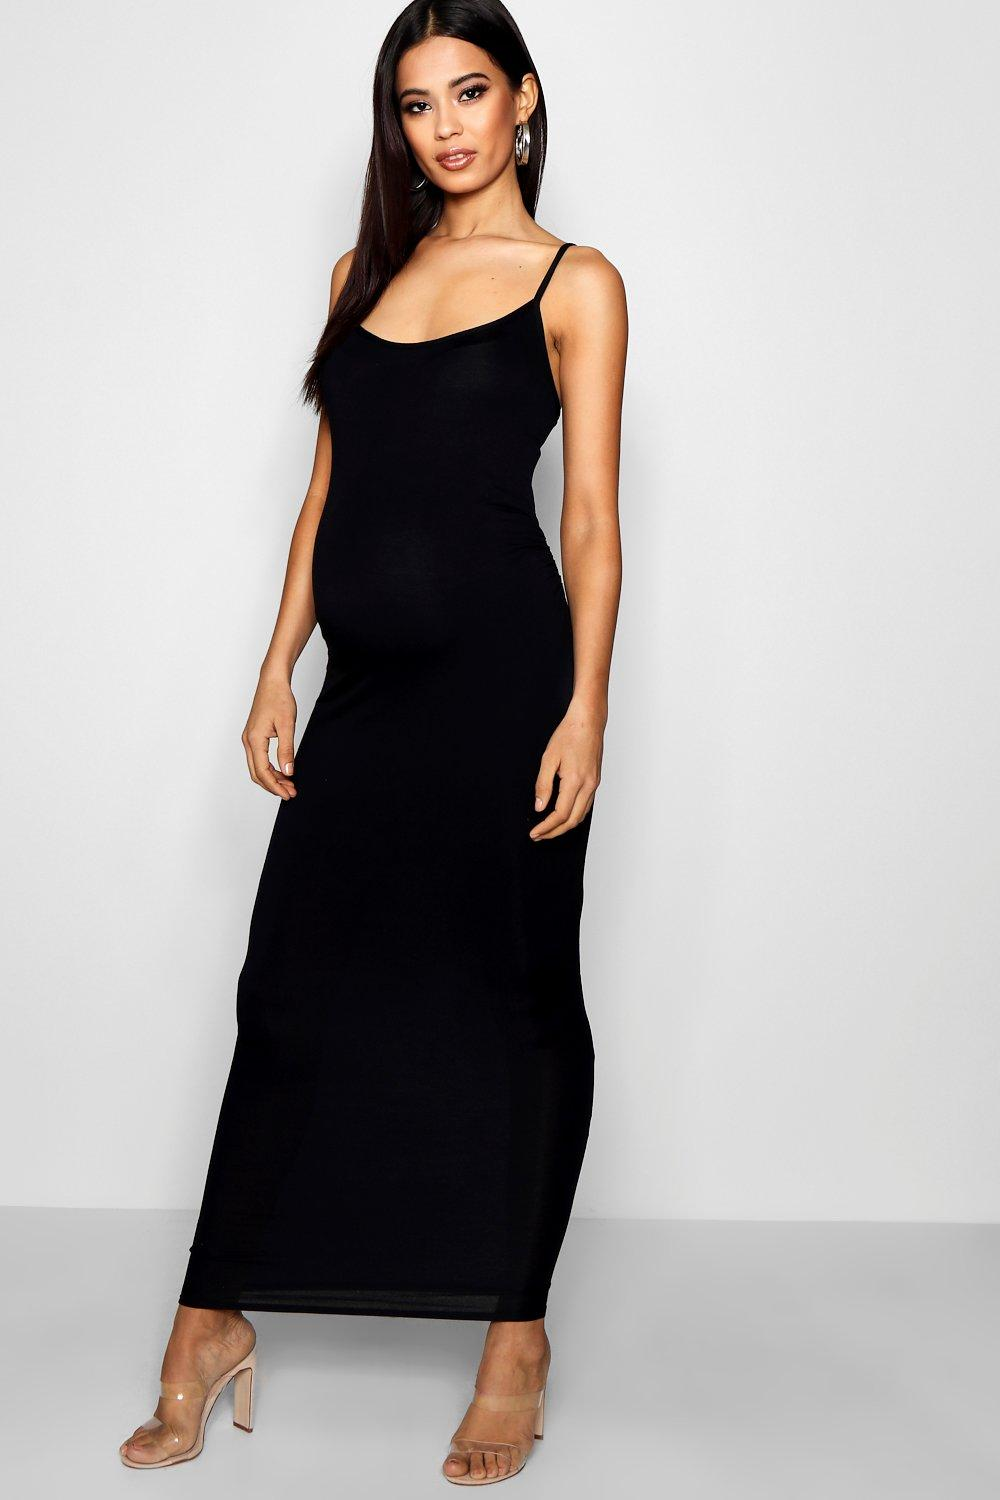 f79db7798ffd07 Womens Black Maternity Strappy Bodycon Maxi Dress. Hover to zoom